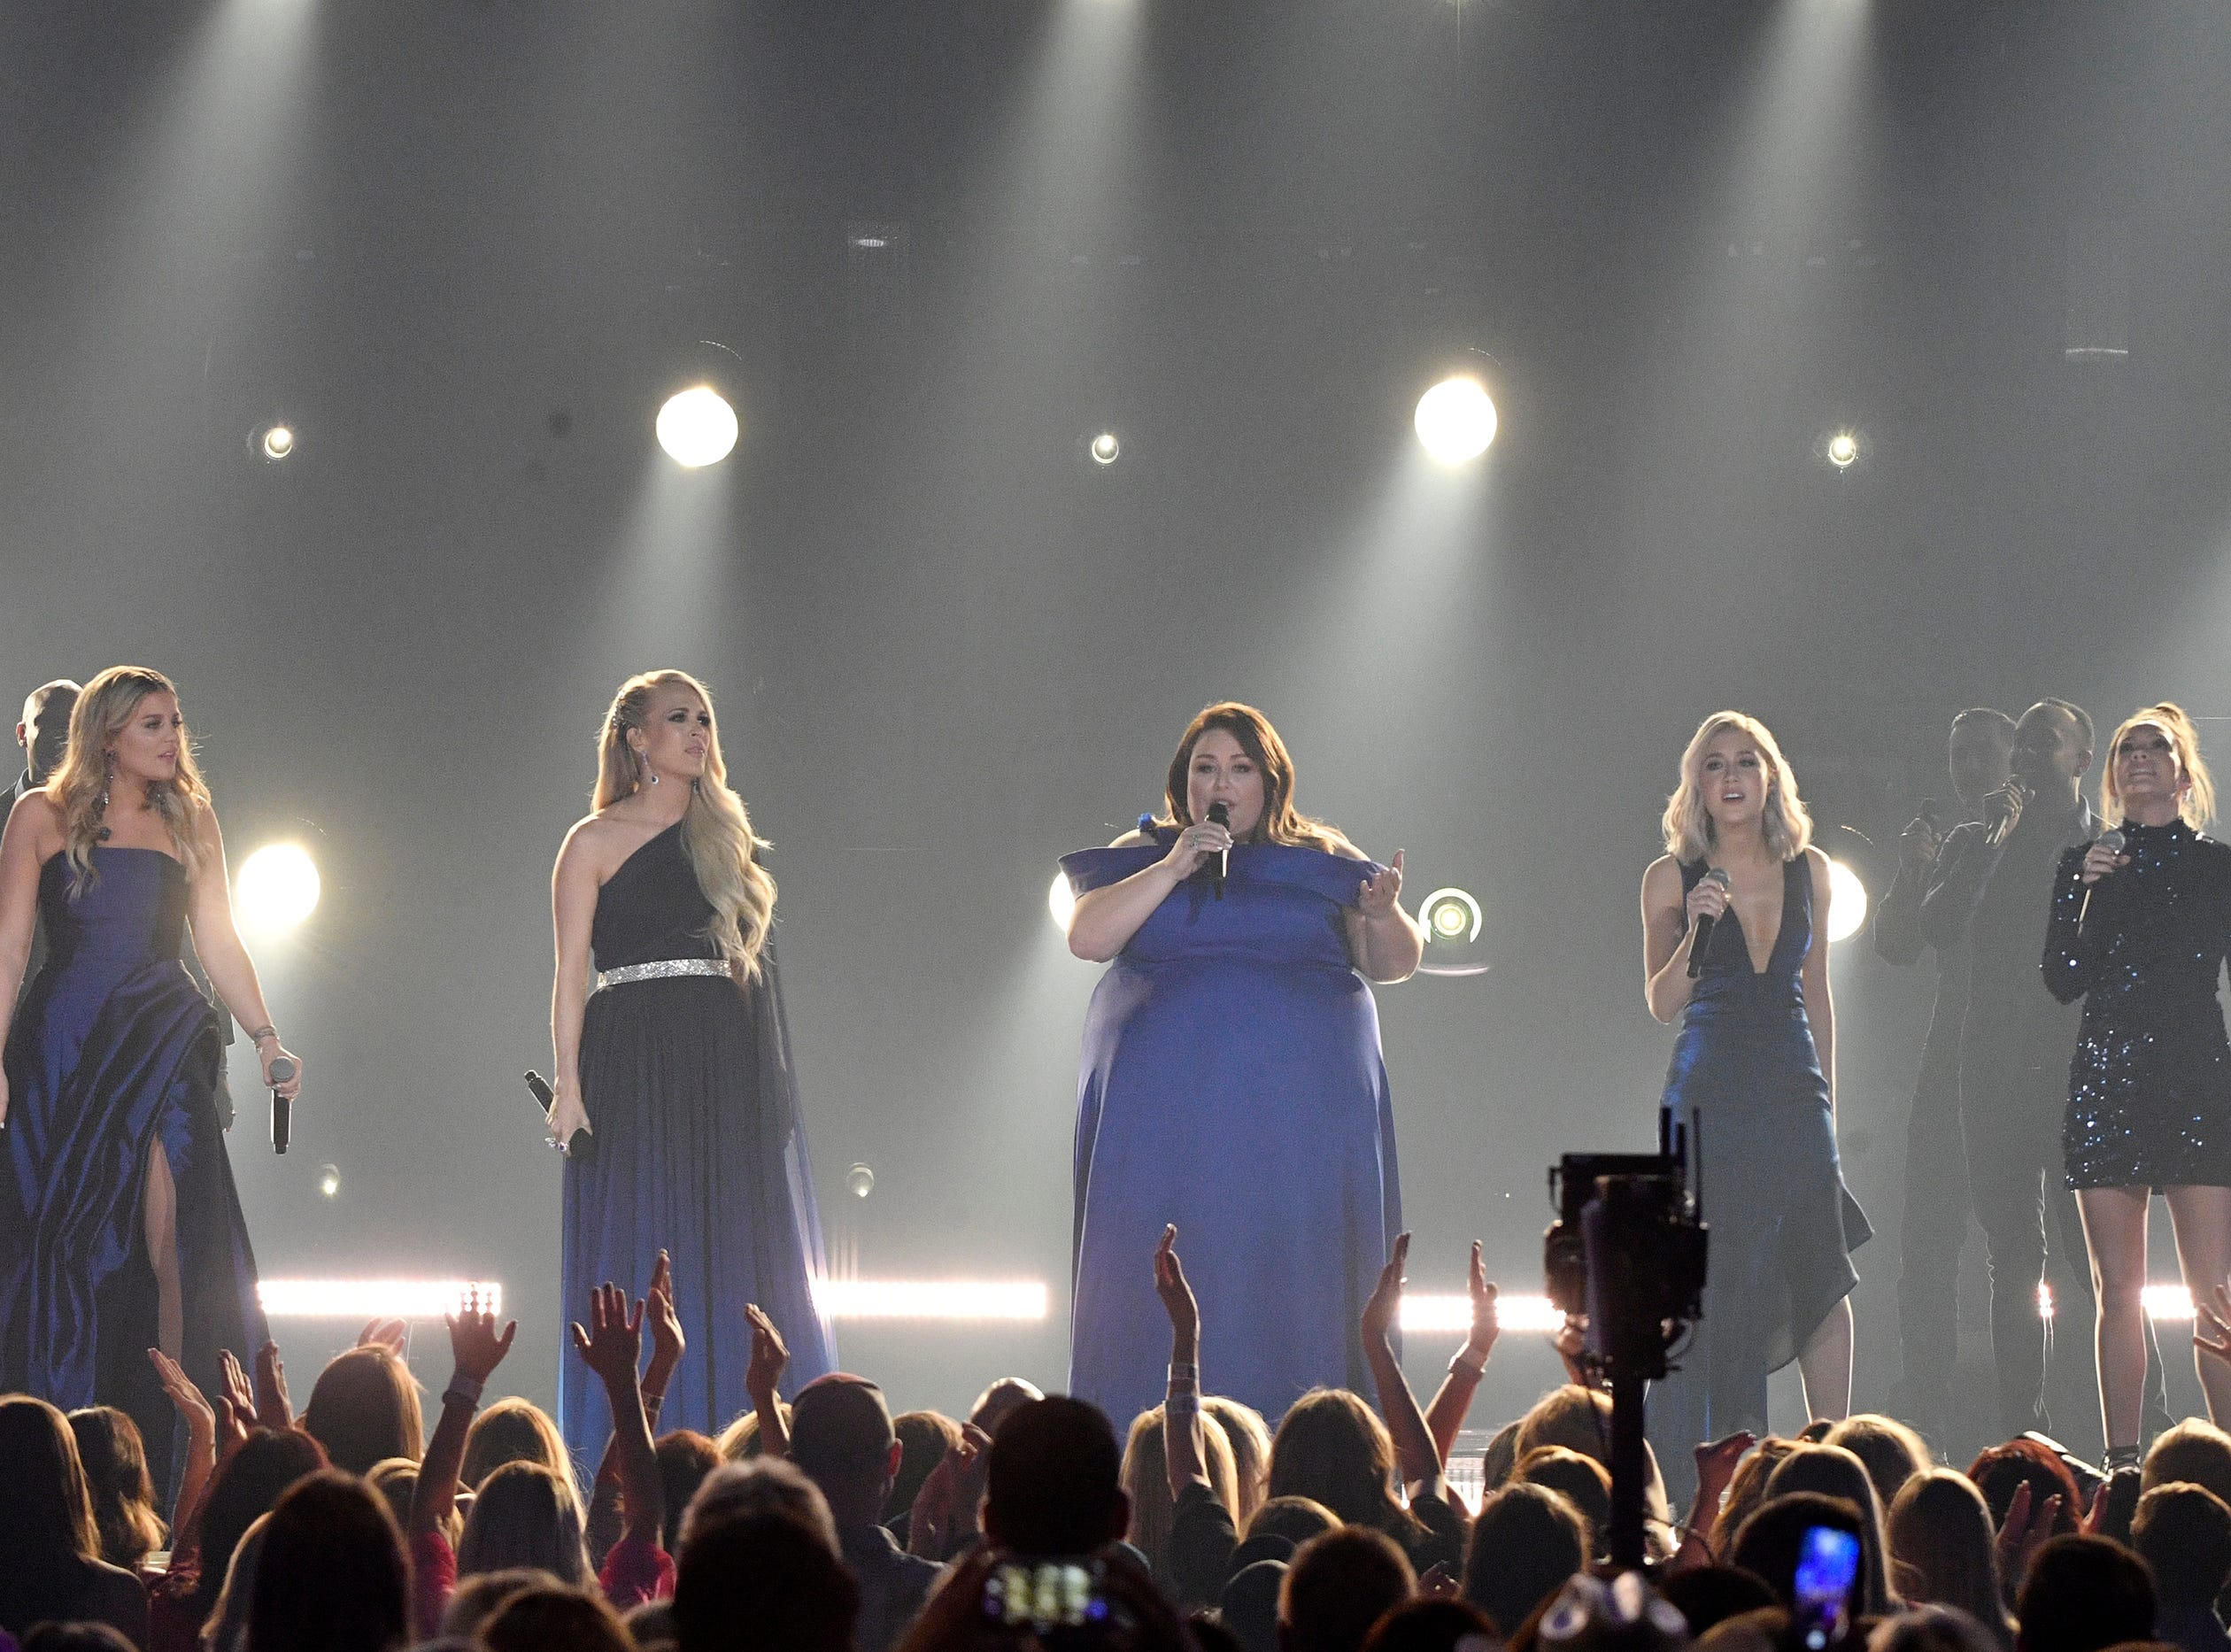 Lauren Alaina, from left, Carrie Underwood, Chrissy Metz, and Maddie Marlow and Tae Dye of Maddie & Tae, perform during the 54TH Academy of Country Music Awards Sunday, April 7, 2019, in Las Vegas, Nev.